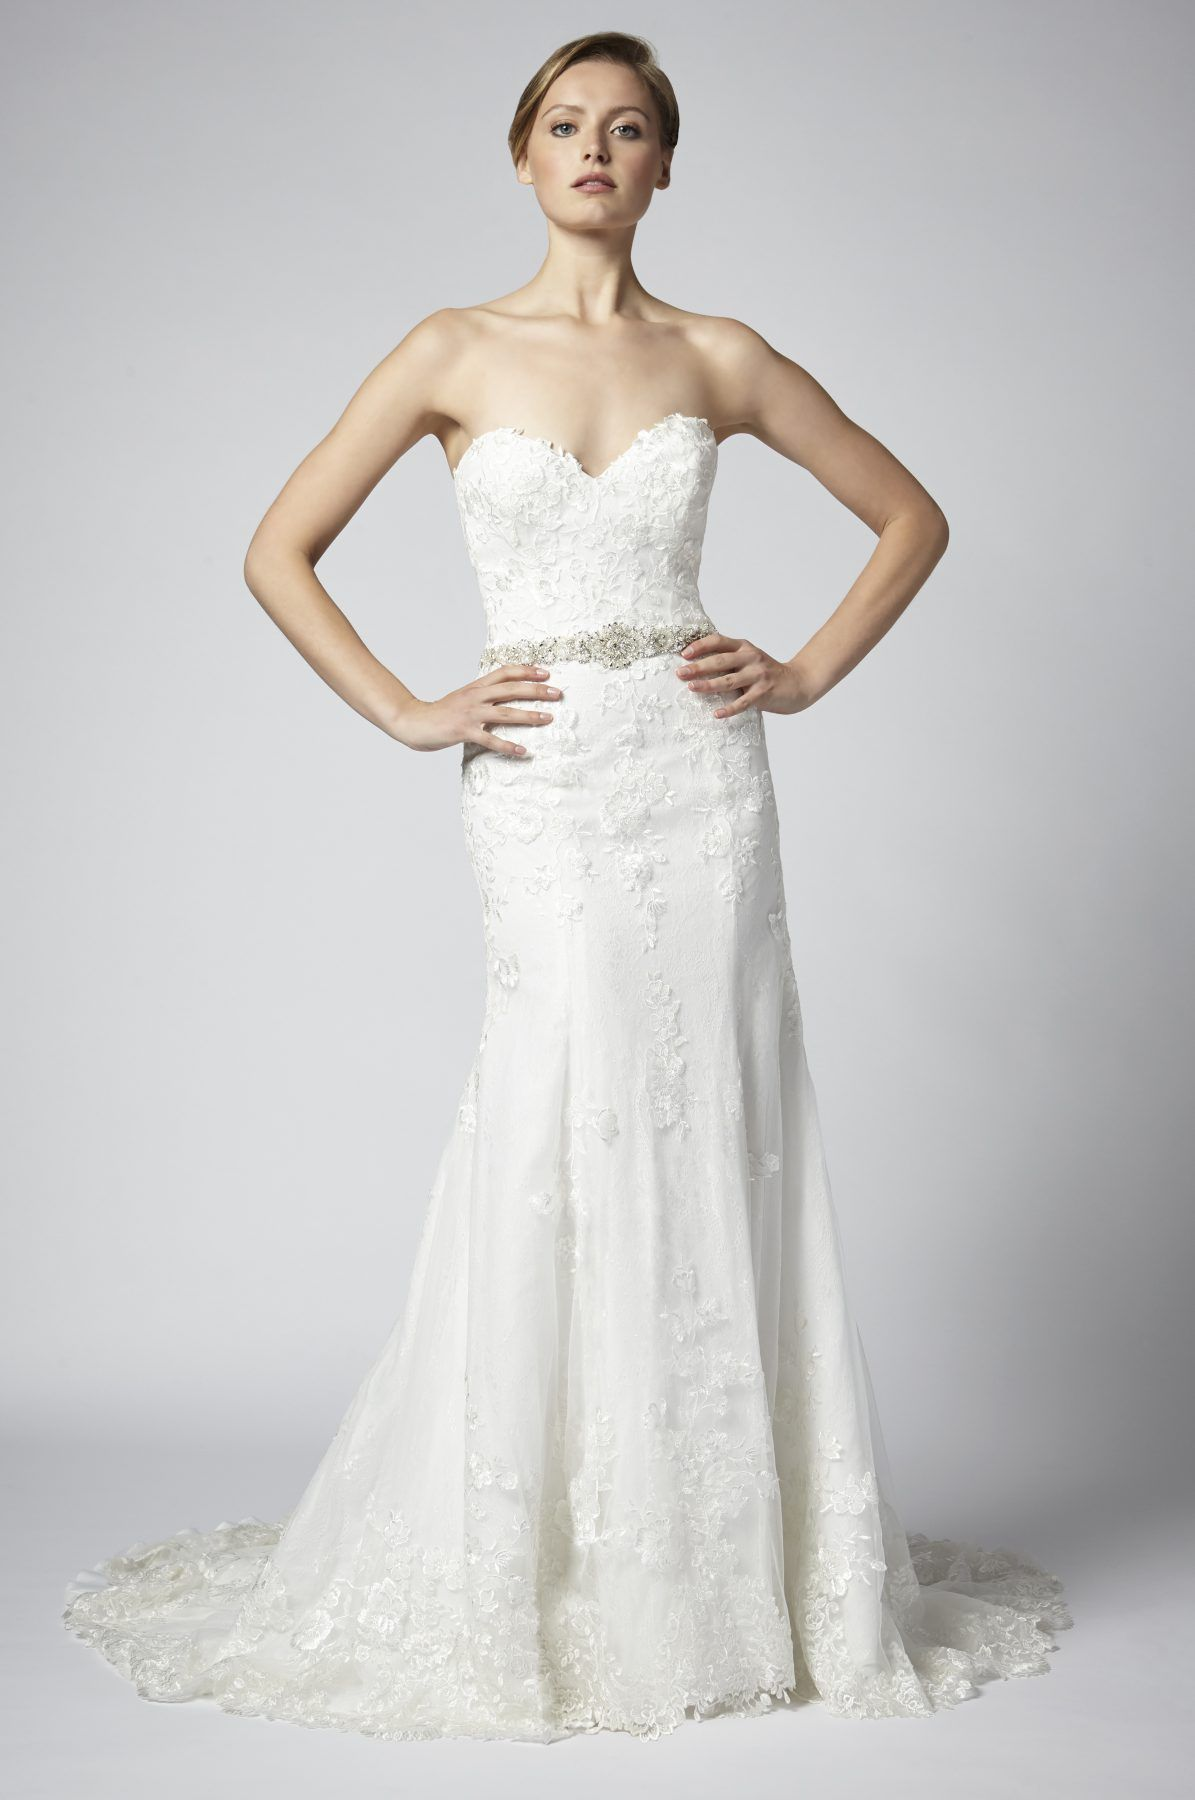 Pearl belt for wedding dress  Lace strapless fit and flare wedding dress with beaded belt and